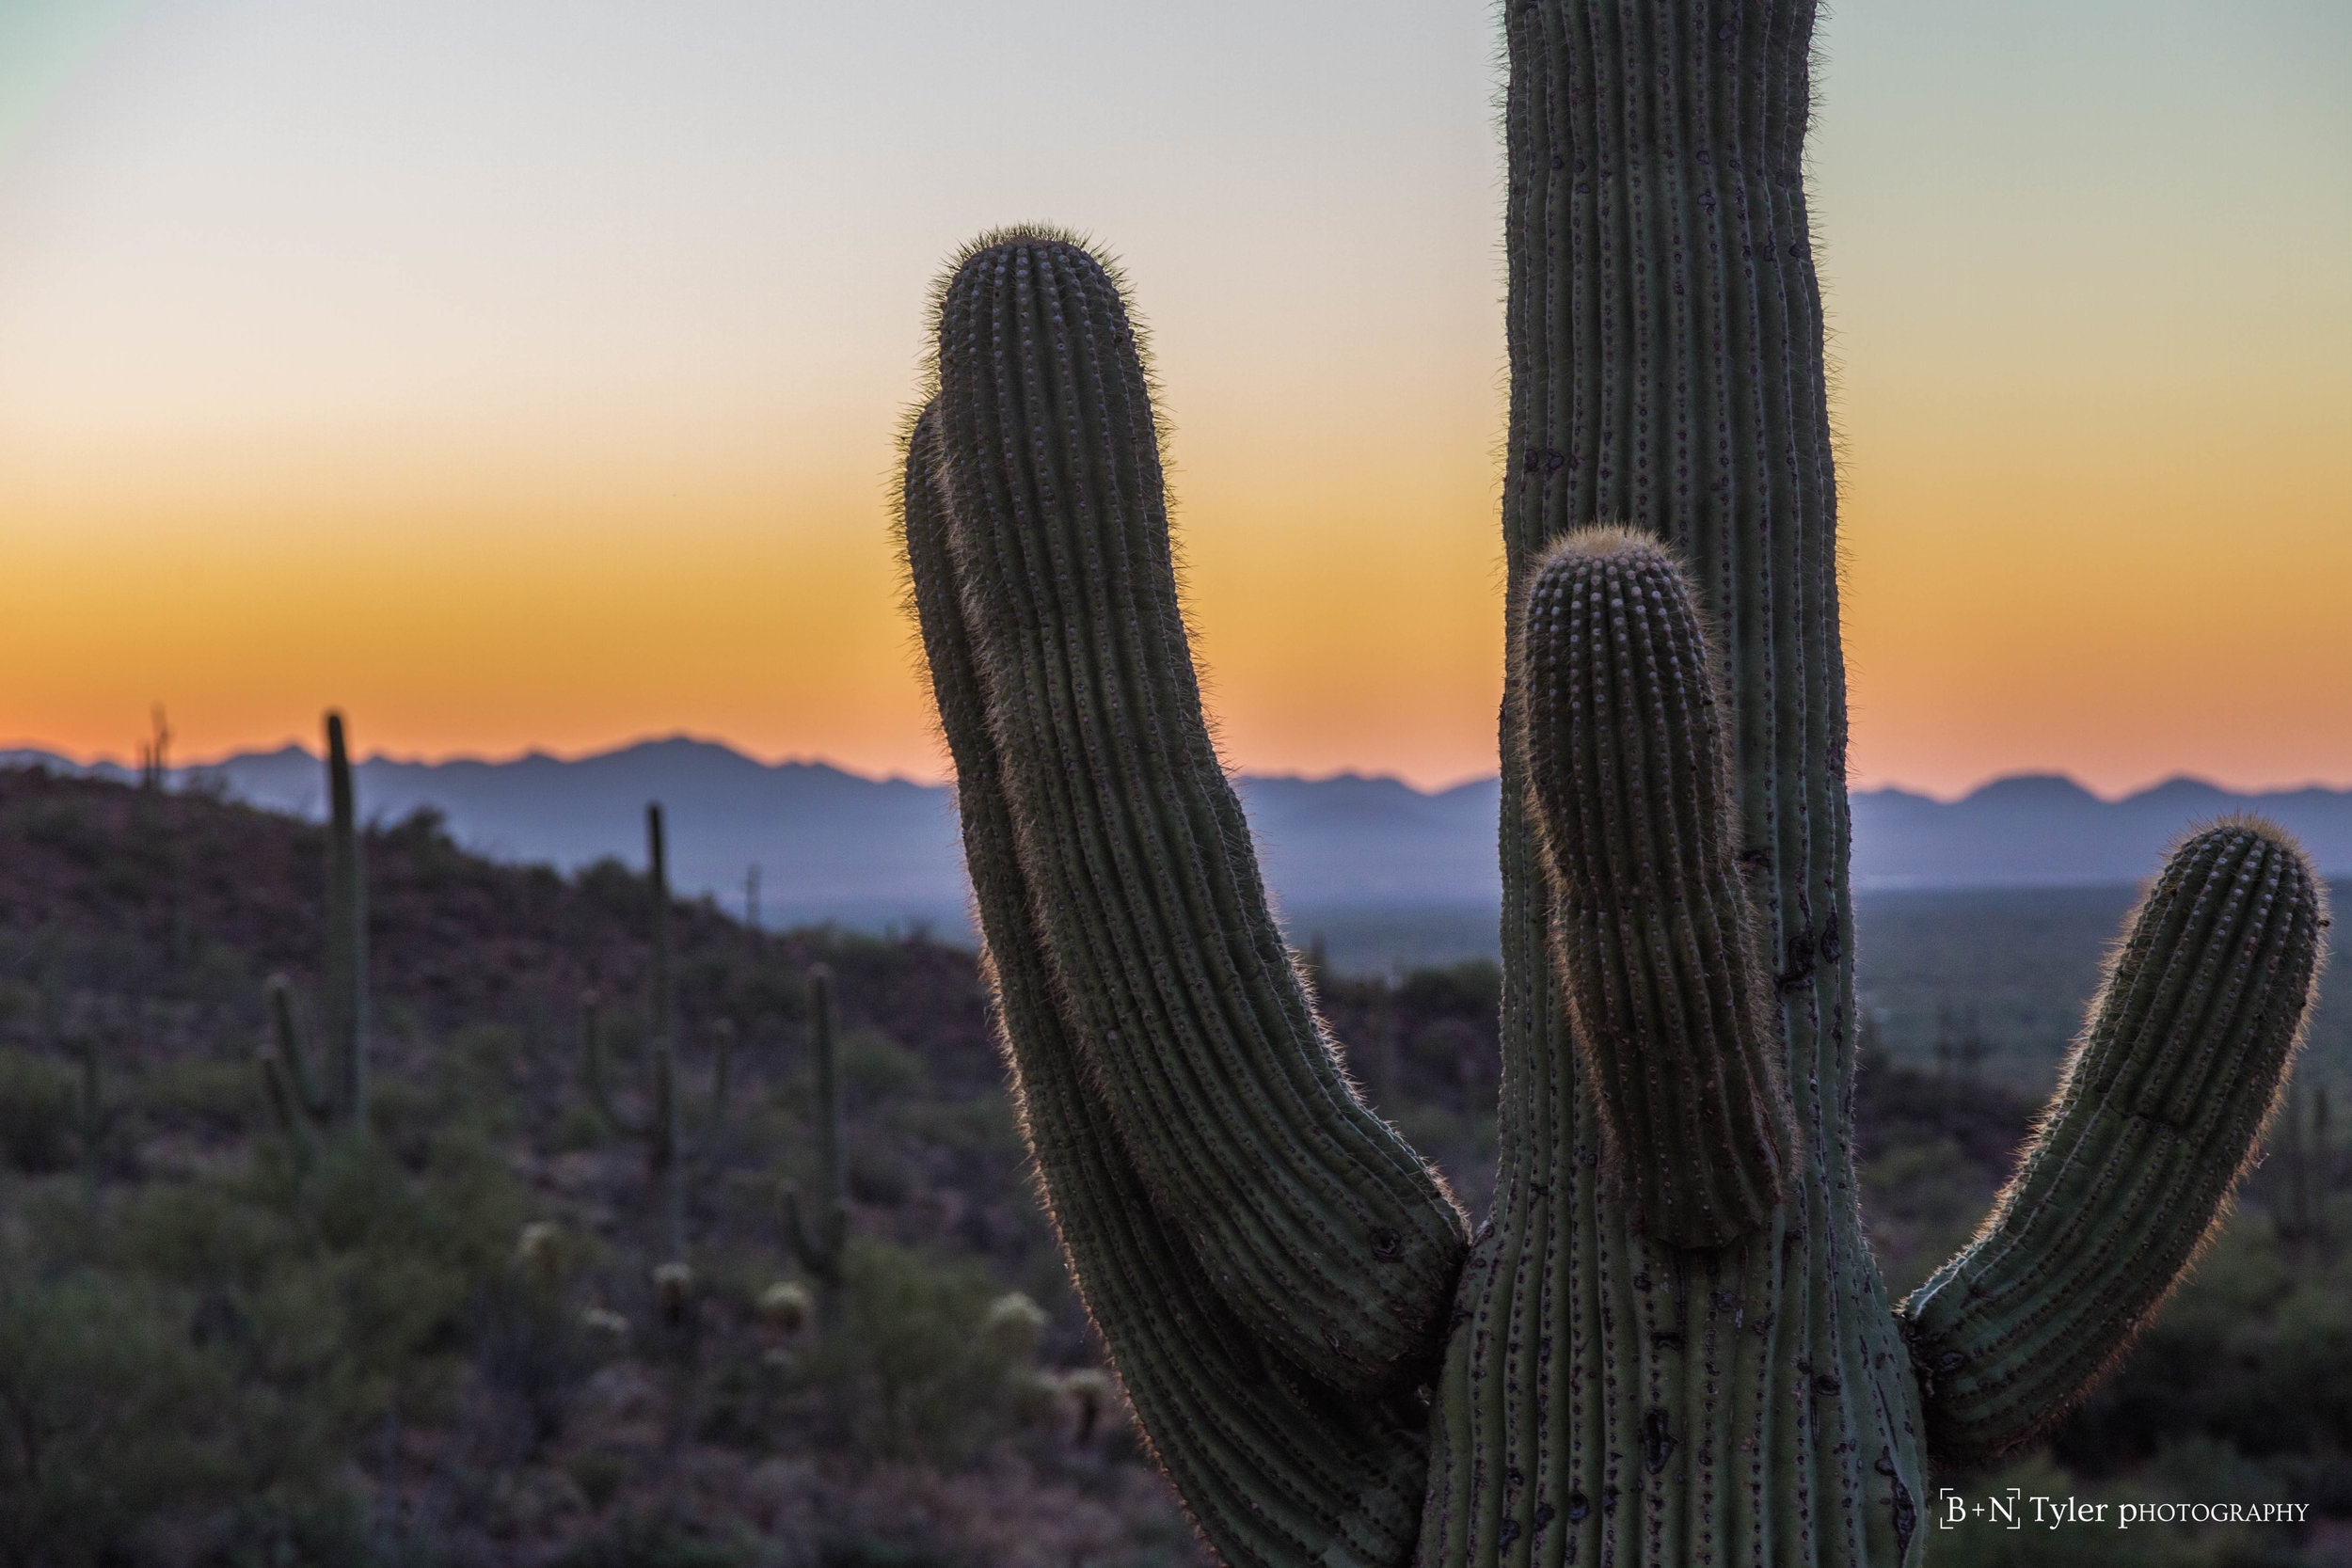 Sunset within the Saguaro National Park